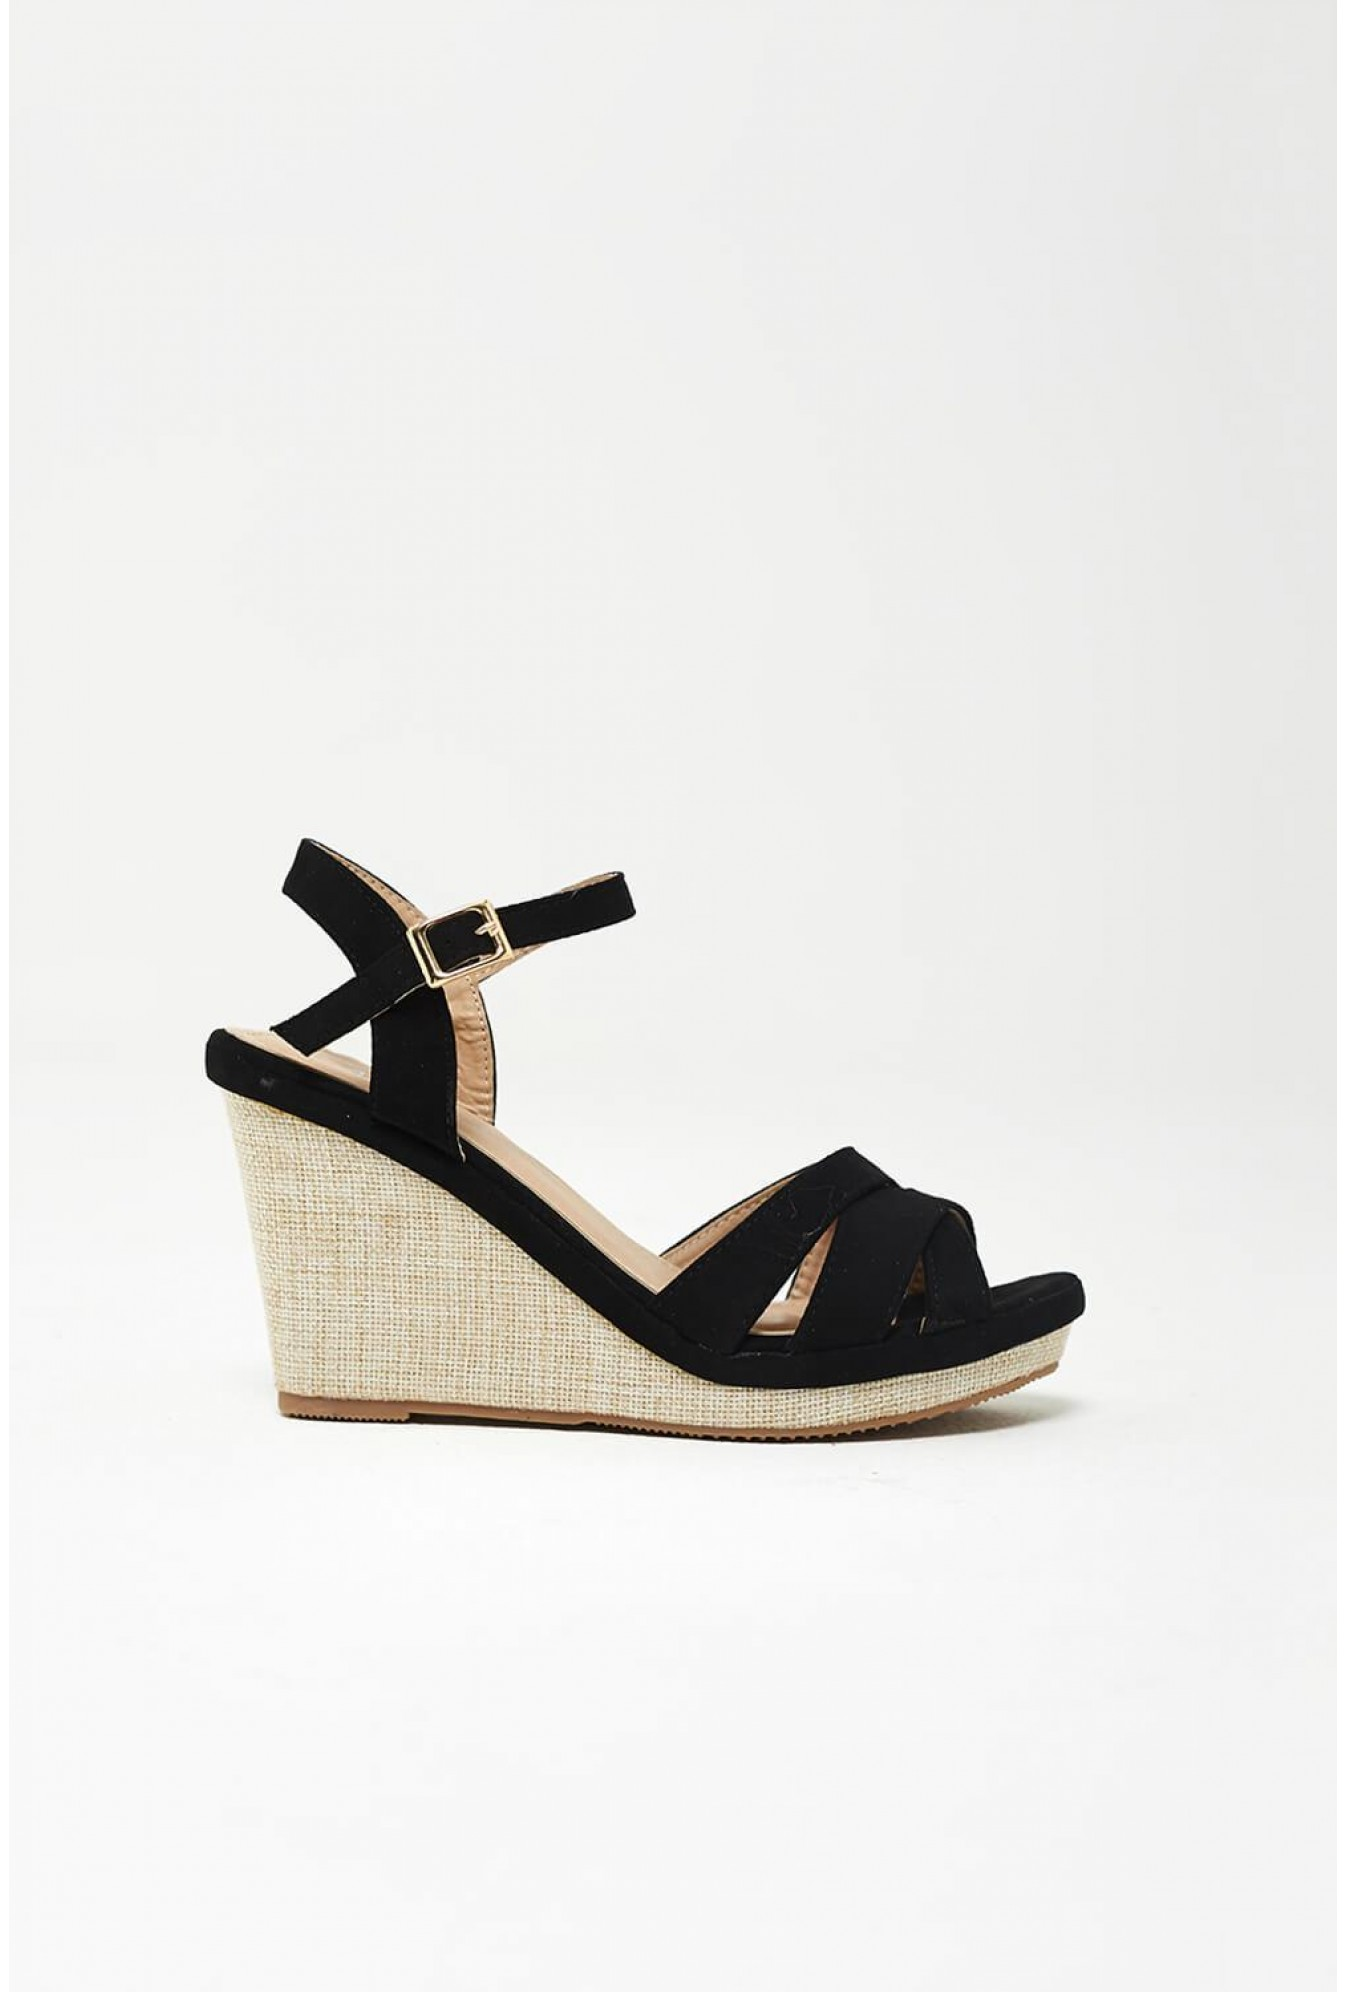 09e2ef3ef0c4 More Views. Adki Espadrille Wedge Sandals in Black